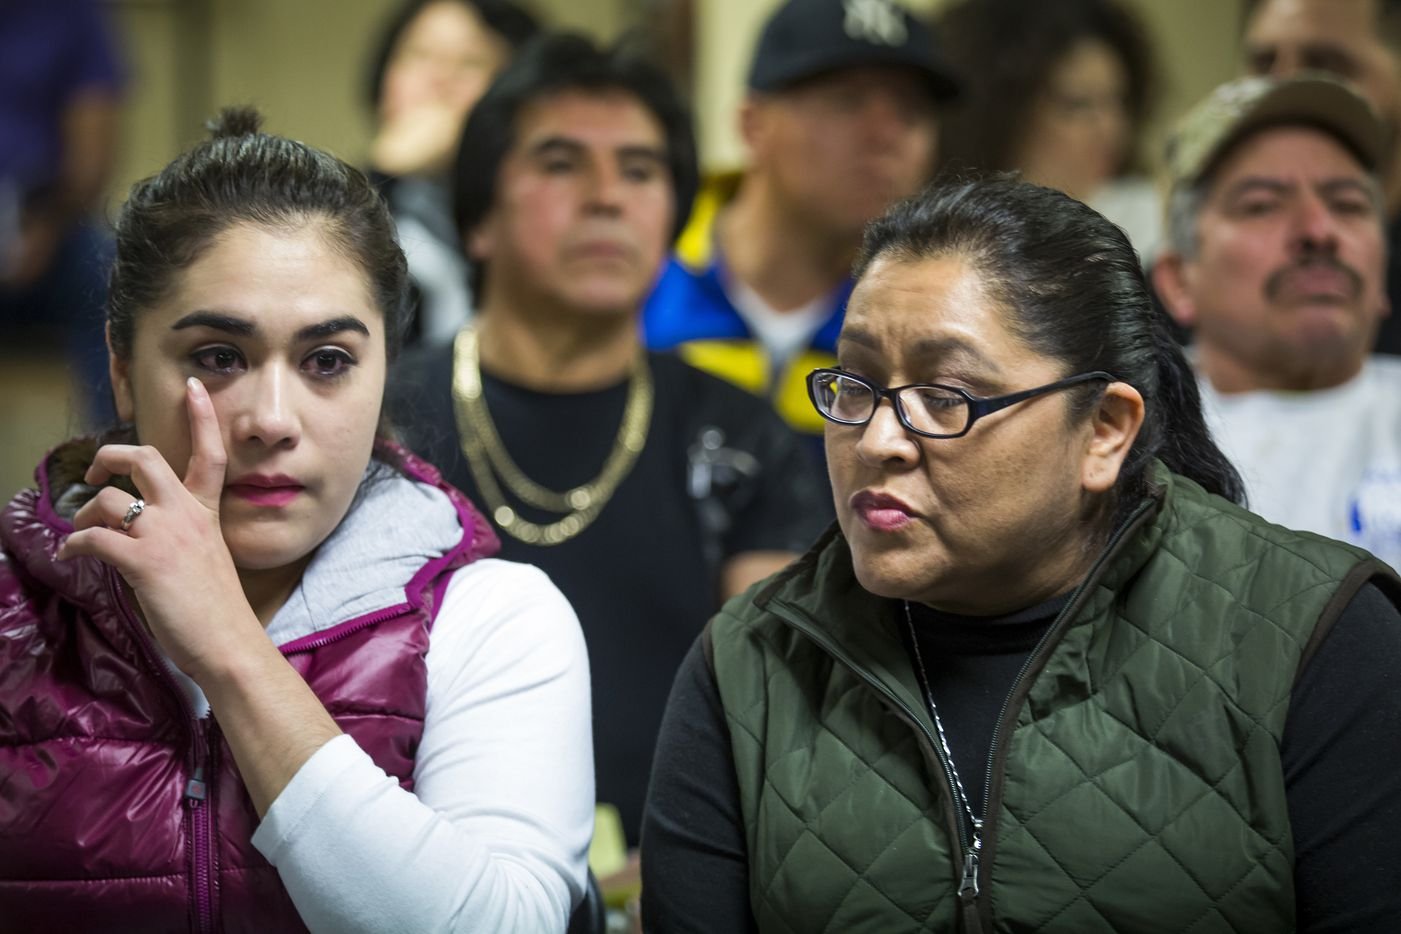 Rosa Guadalupe Torres (left) wipes away a tear as she and her mother Marta Macias talk about their concern for children they work with in an early education program before a community meeting on possible deportations at the Consulate General of Mexico on Thursday, Feb. 16, 2017, in Dallas.